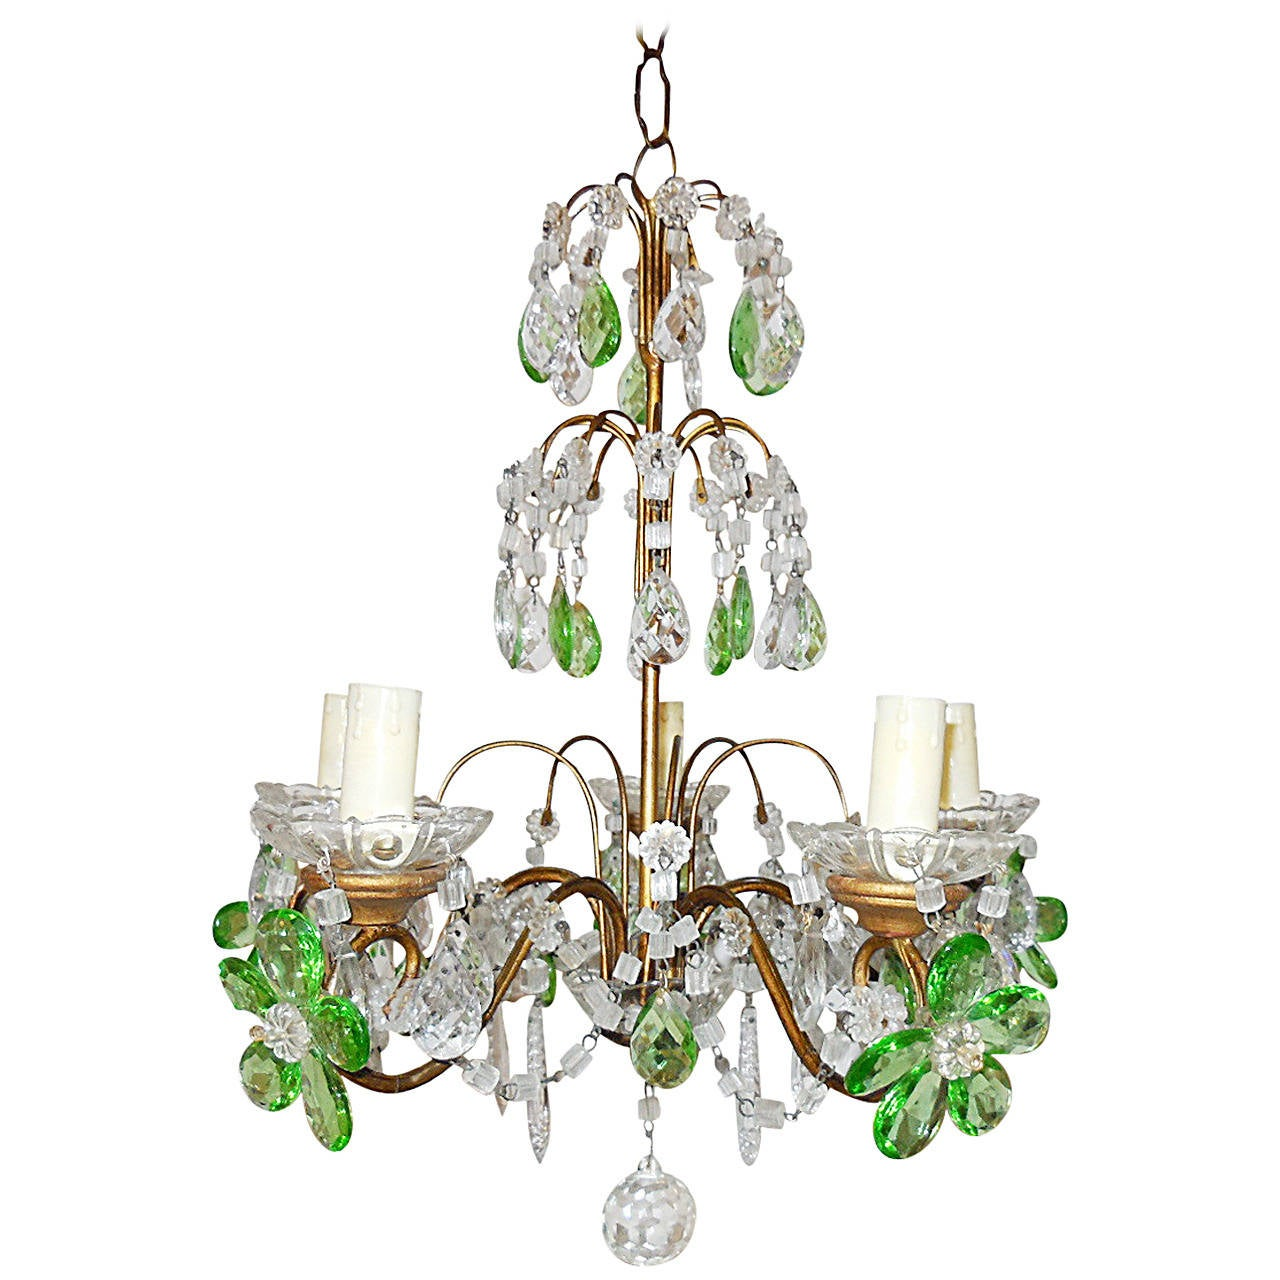 French green and clear crystal prisms flowers chandelier circa 1920 french green and clear crystal prisms flowers chandelier circa 1920 for sale arubaitofo Choice Image